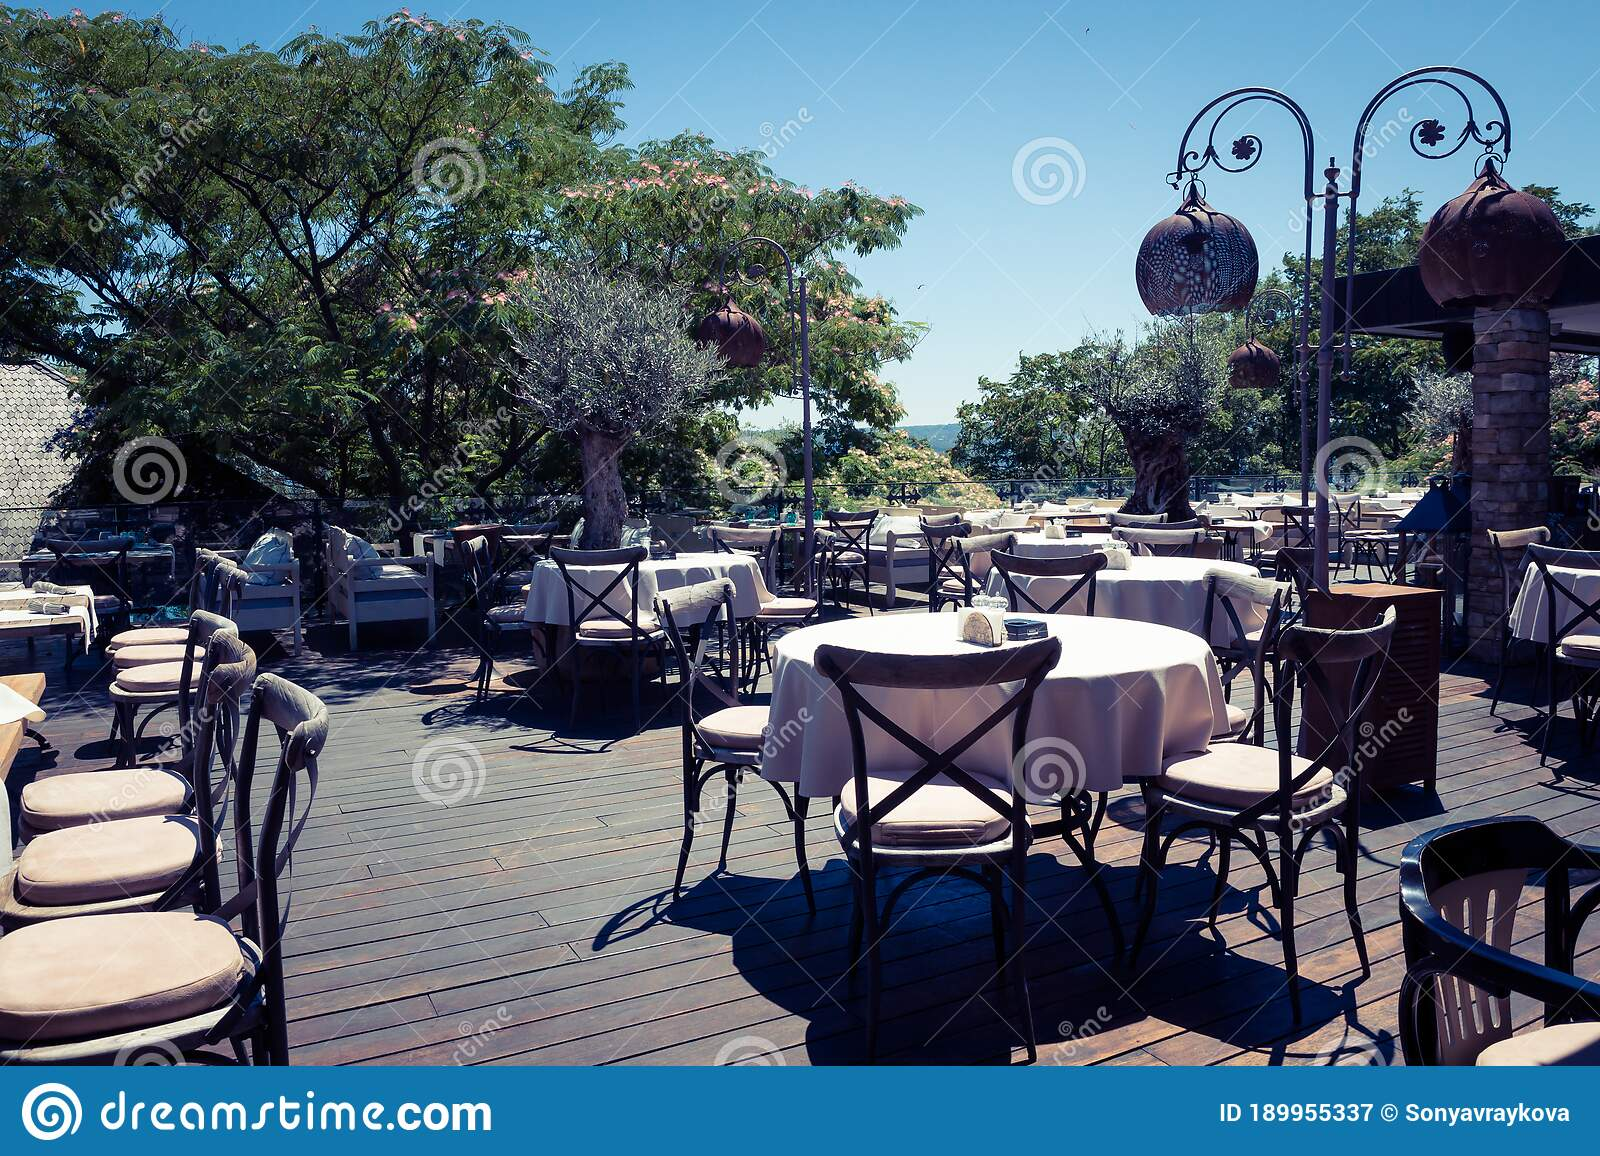 2 143 Fancy Outdoor Restaurant Photos Free Royalty Free Stock Photos From Dreamstime